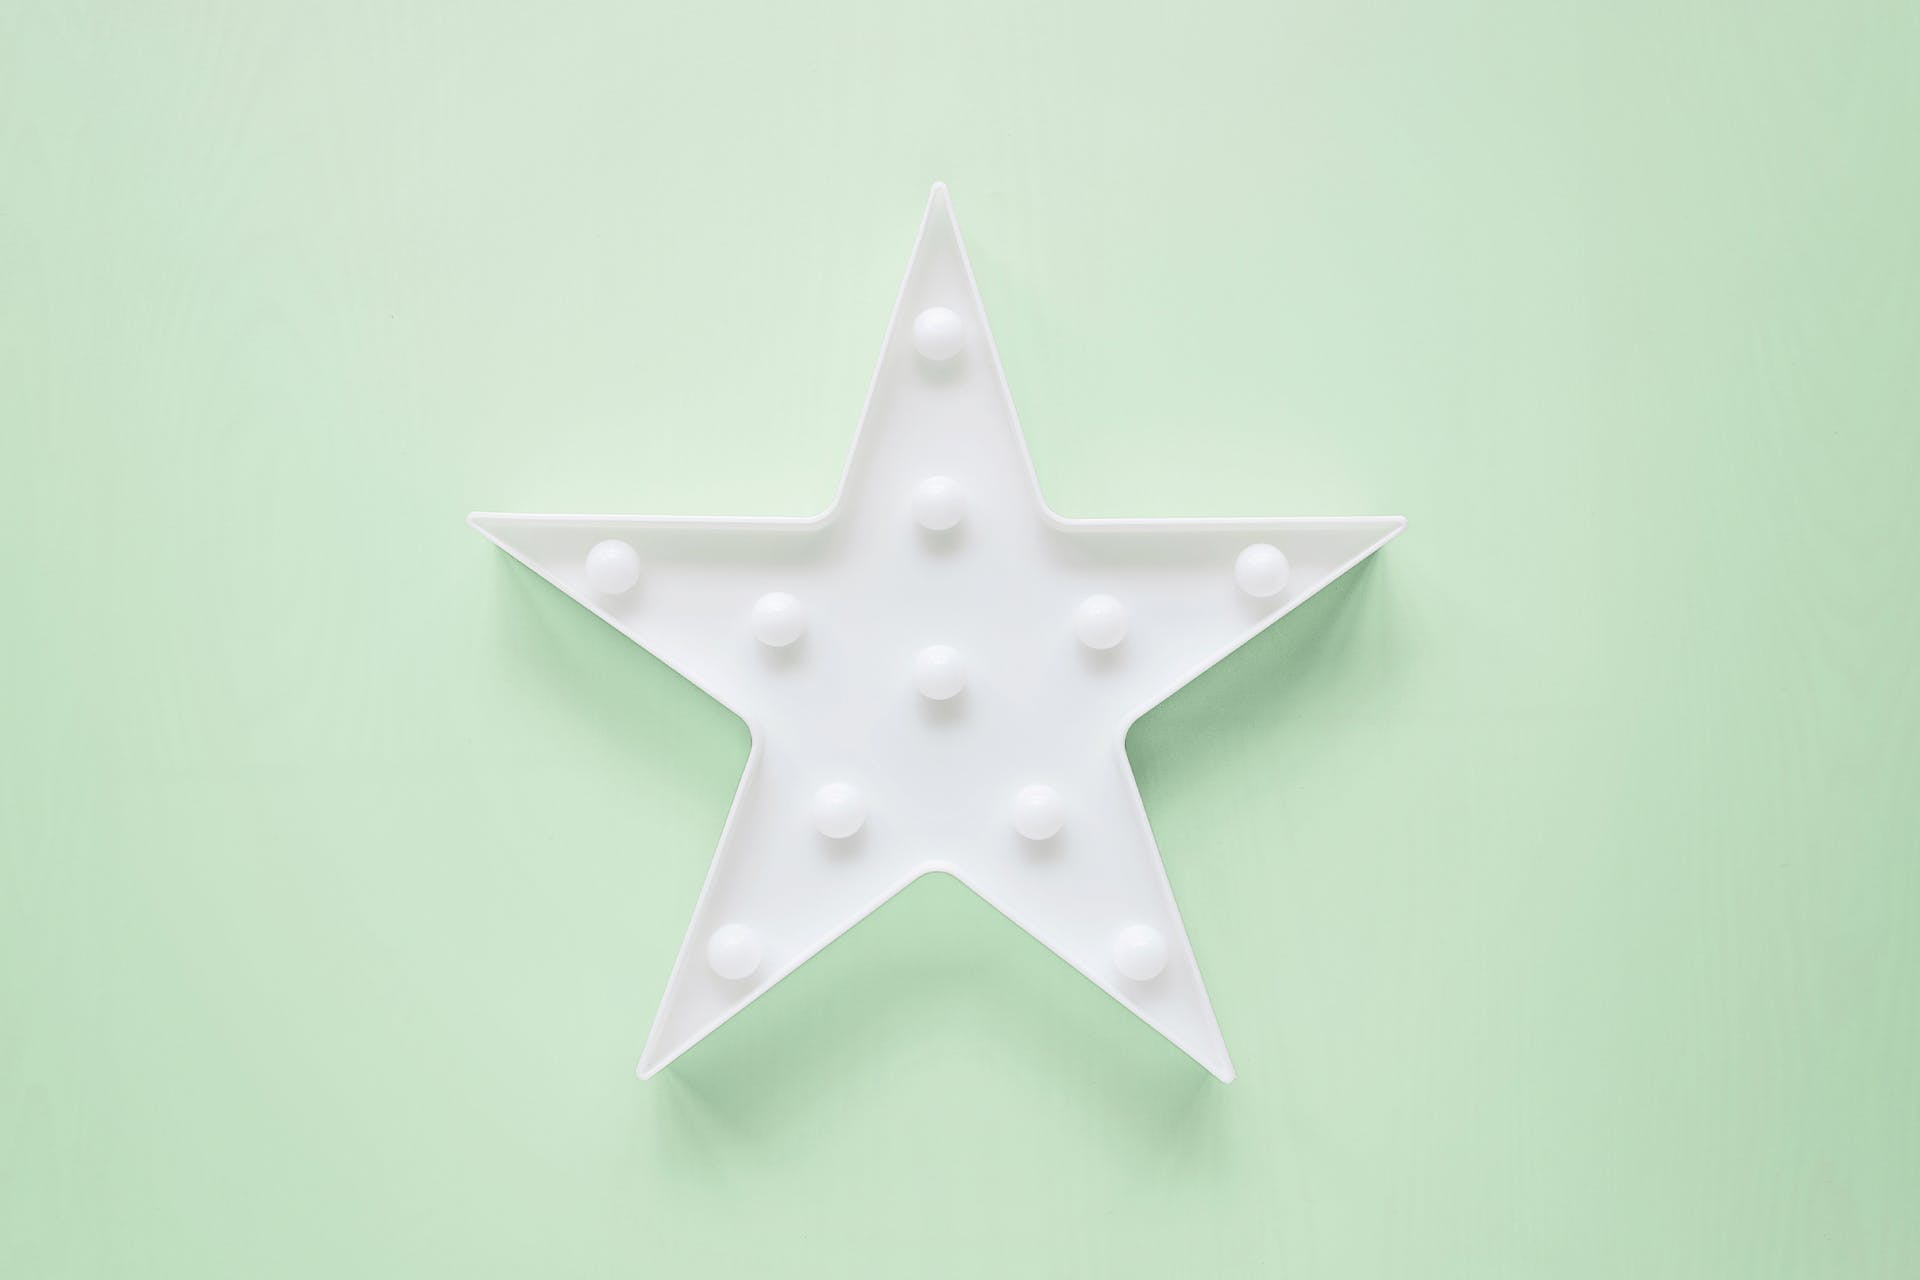 White star on green background. Best social media marketing examples from 2021